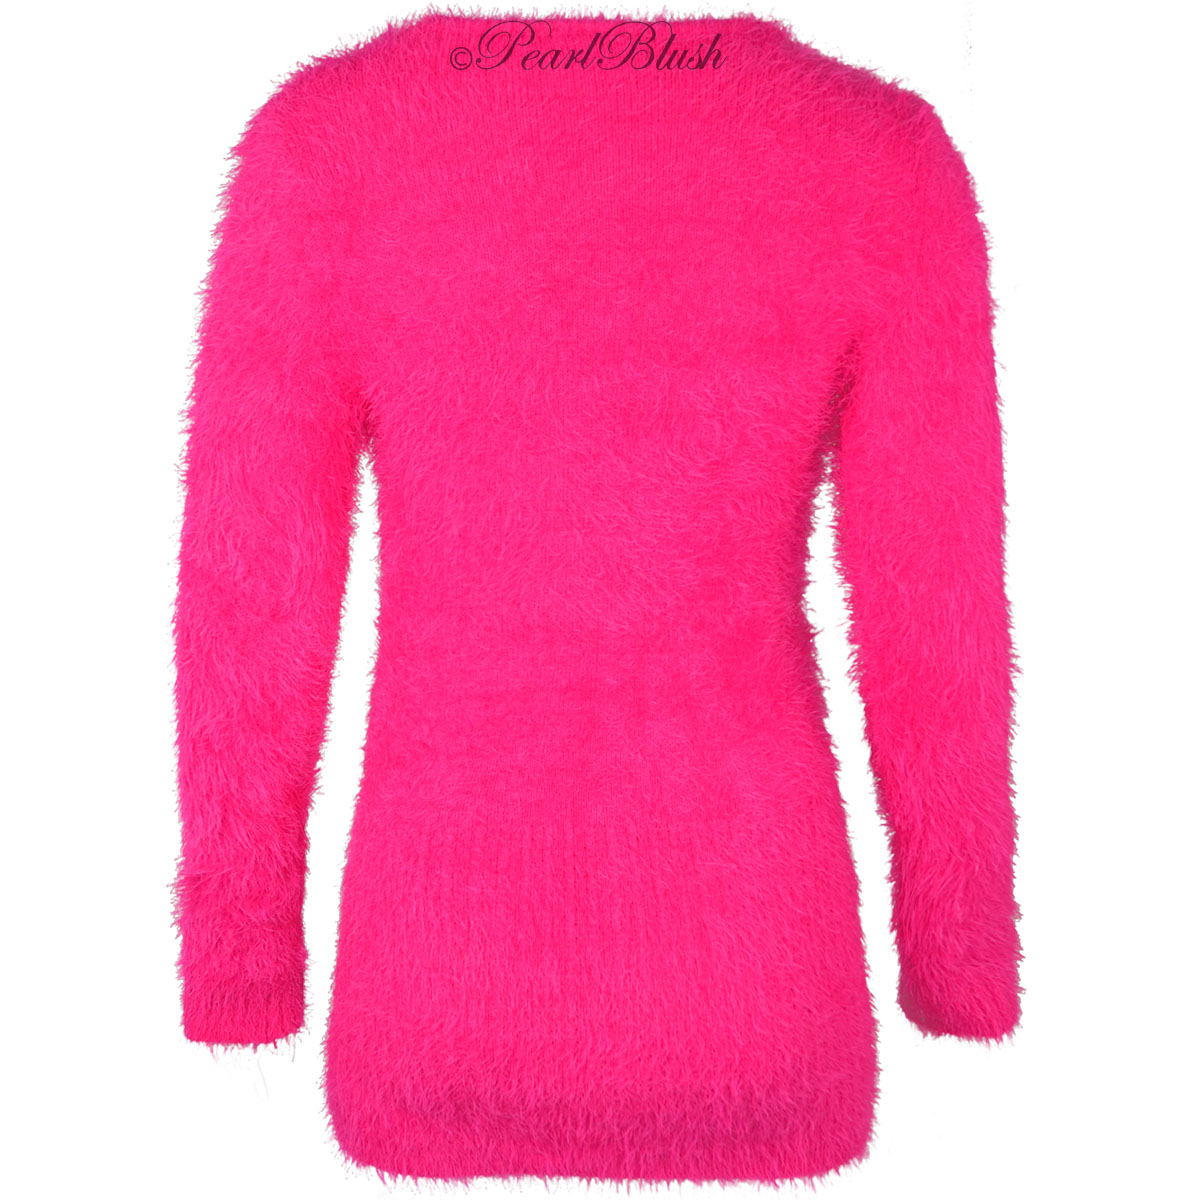 Find the best selection of cheap fluffy jumpers in bulk here at hamlergoodchain.ga Including printed jumpers men and bape jumper at wholesale prices from fluffy jumpers manufacturers. Source discount and high quality products in hundreds of categories wholesale direct from China.